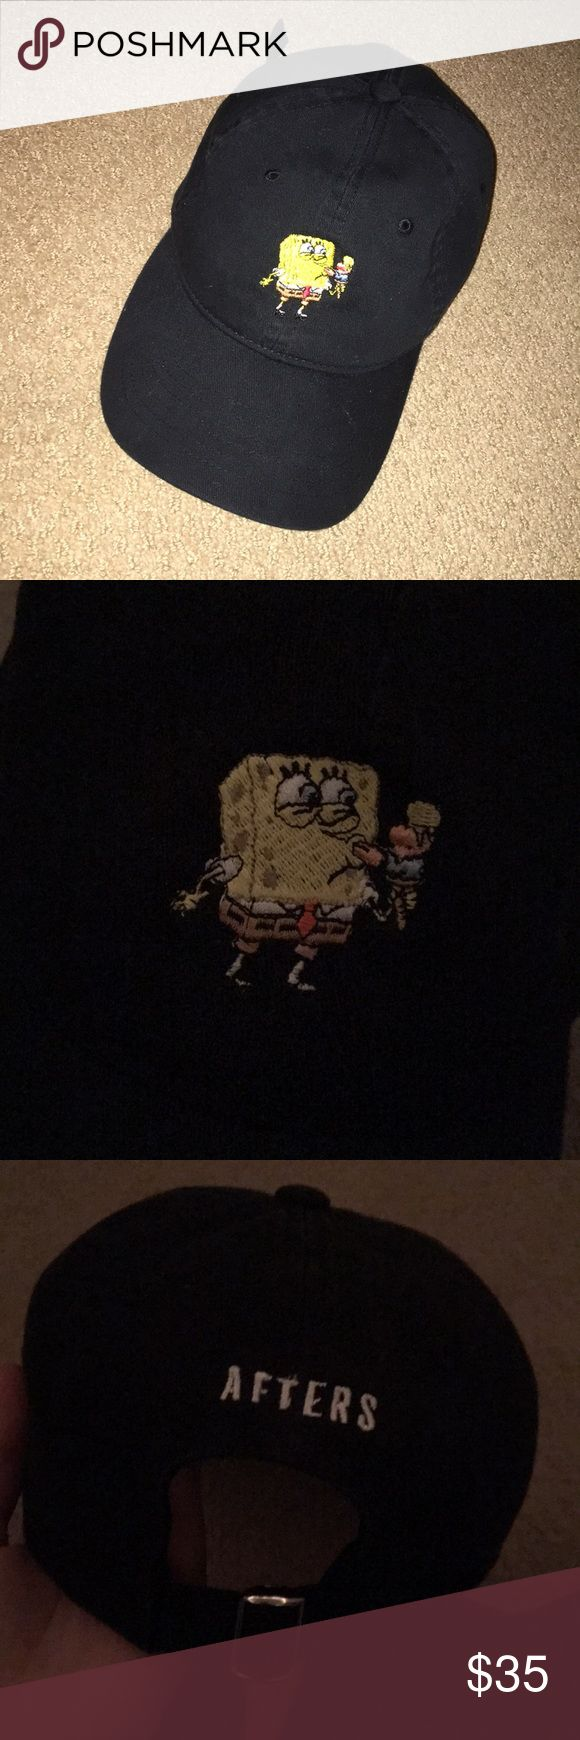 Limited edition spongebob hat Made only for the AFTERS ice cream franchise. Worn a few times but no rips or tears and they don't make it anymore afters Accessories Hats